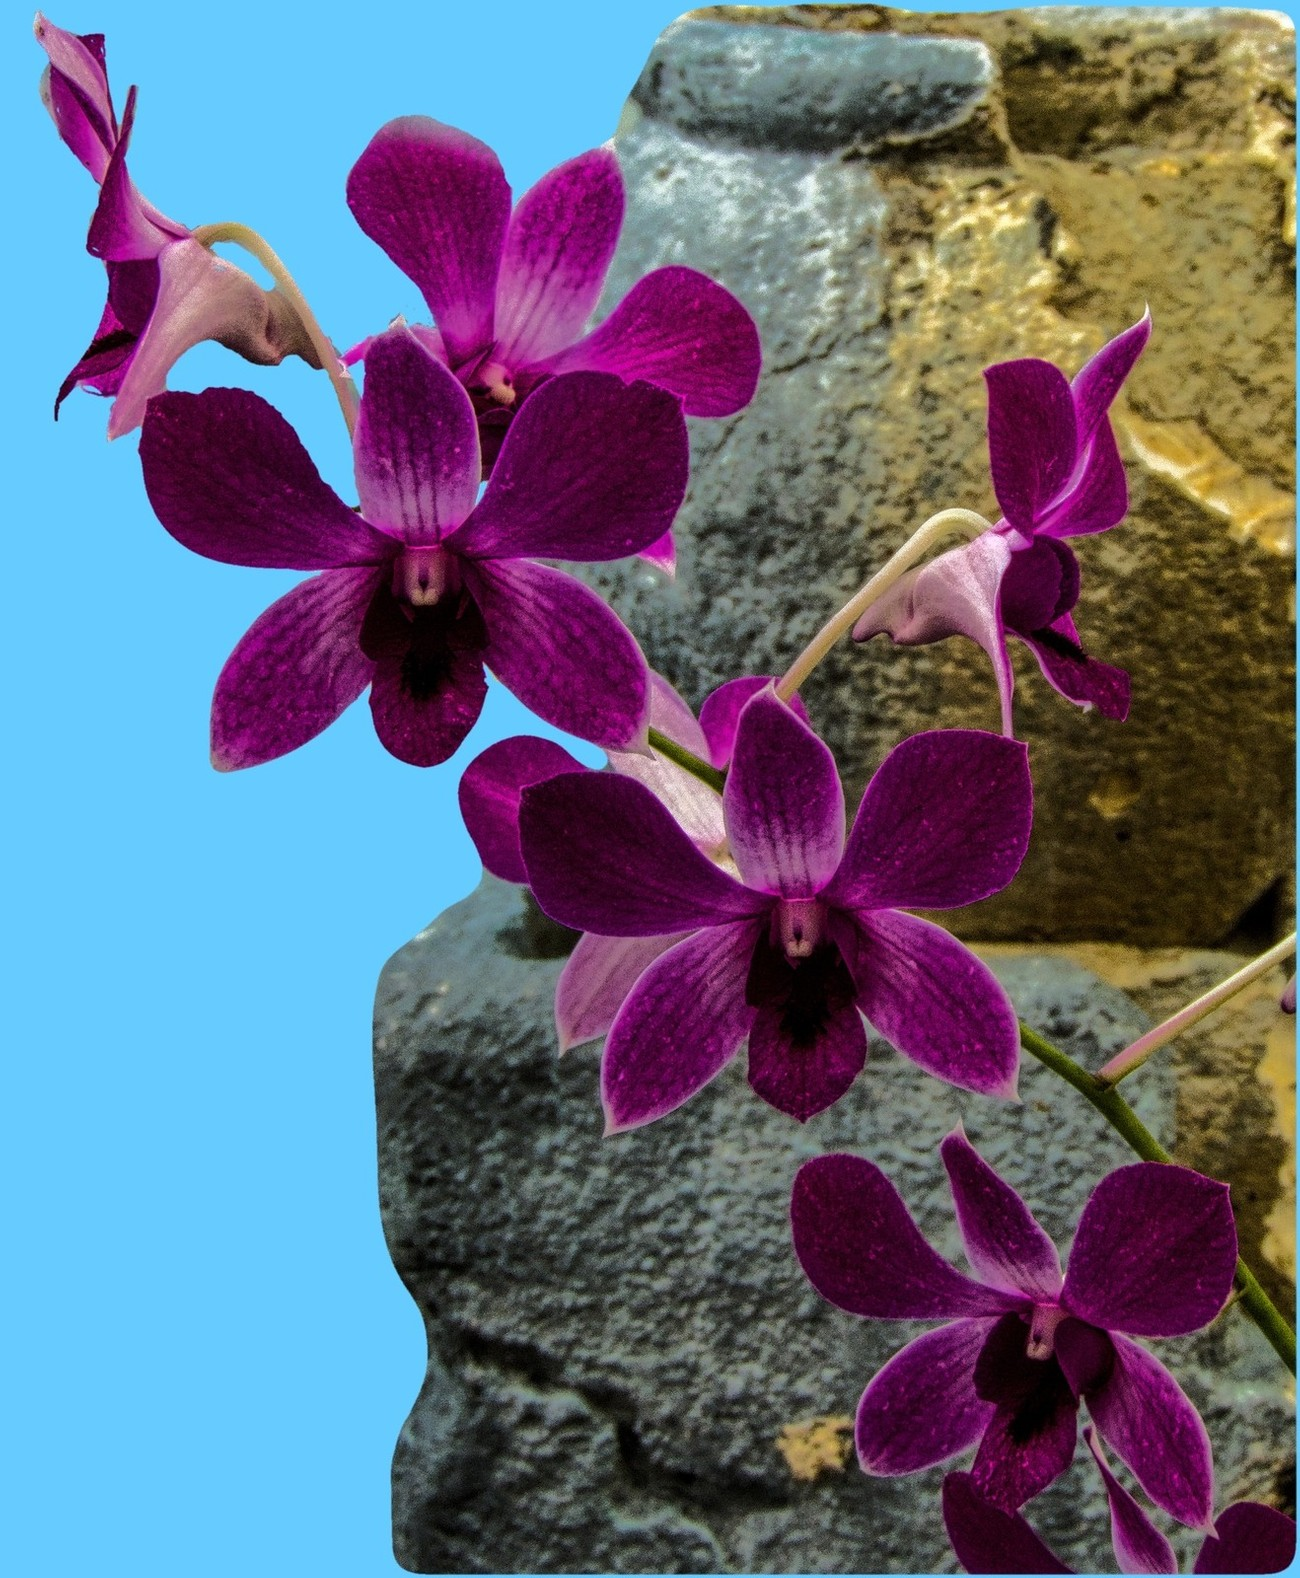 One of many beautiful orchids growing in the Buffalo Botanical Gardens.